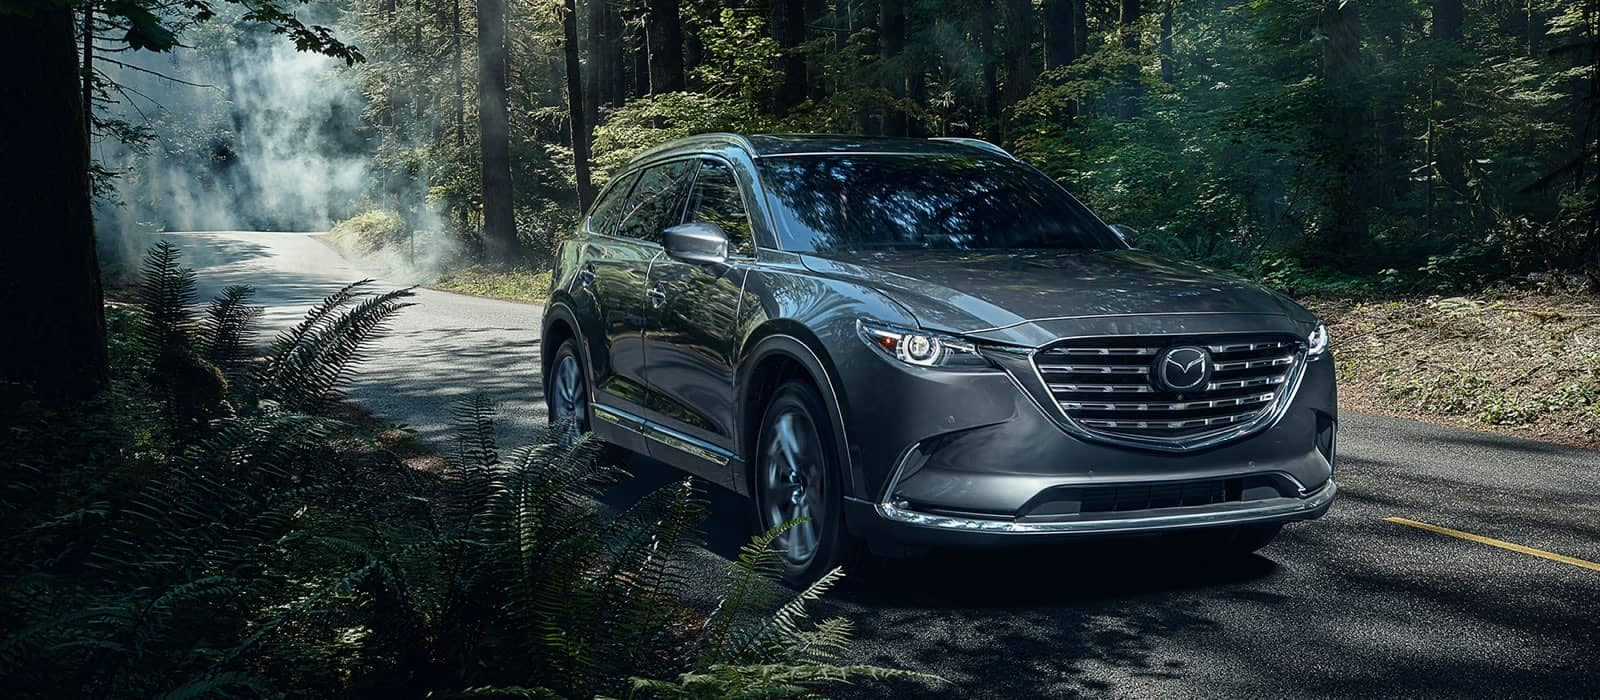 2021 Mazda CX-9 driving in the woods_mobile